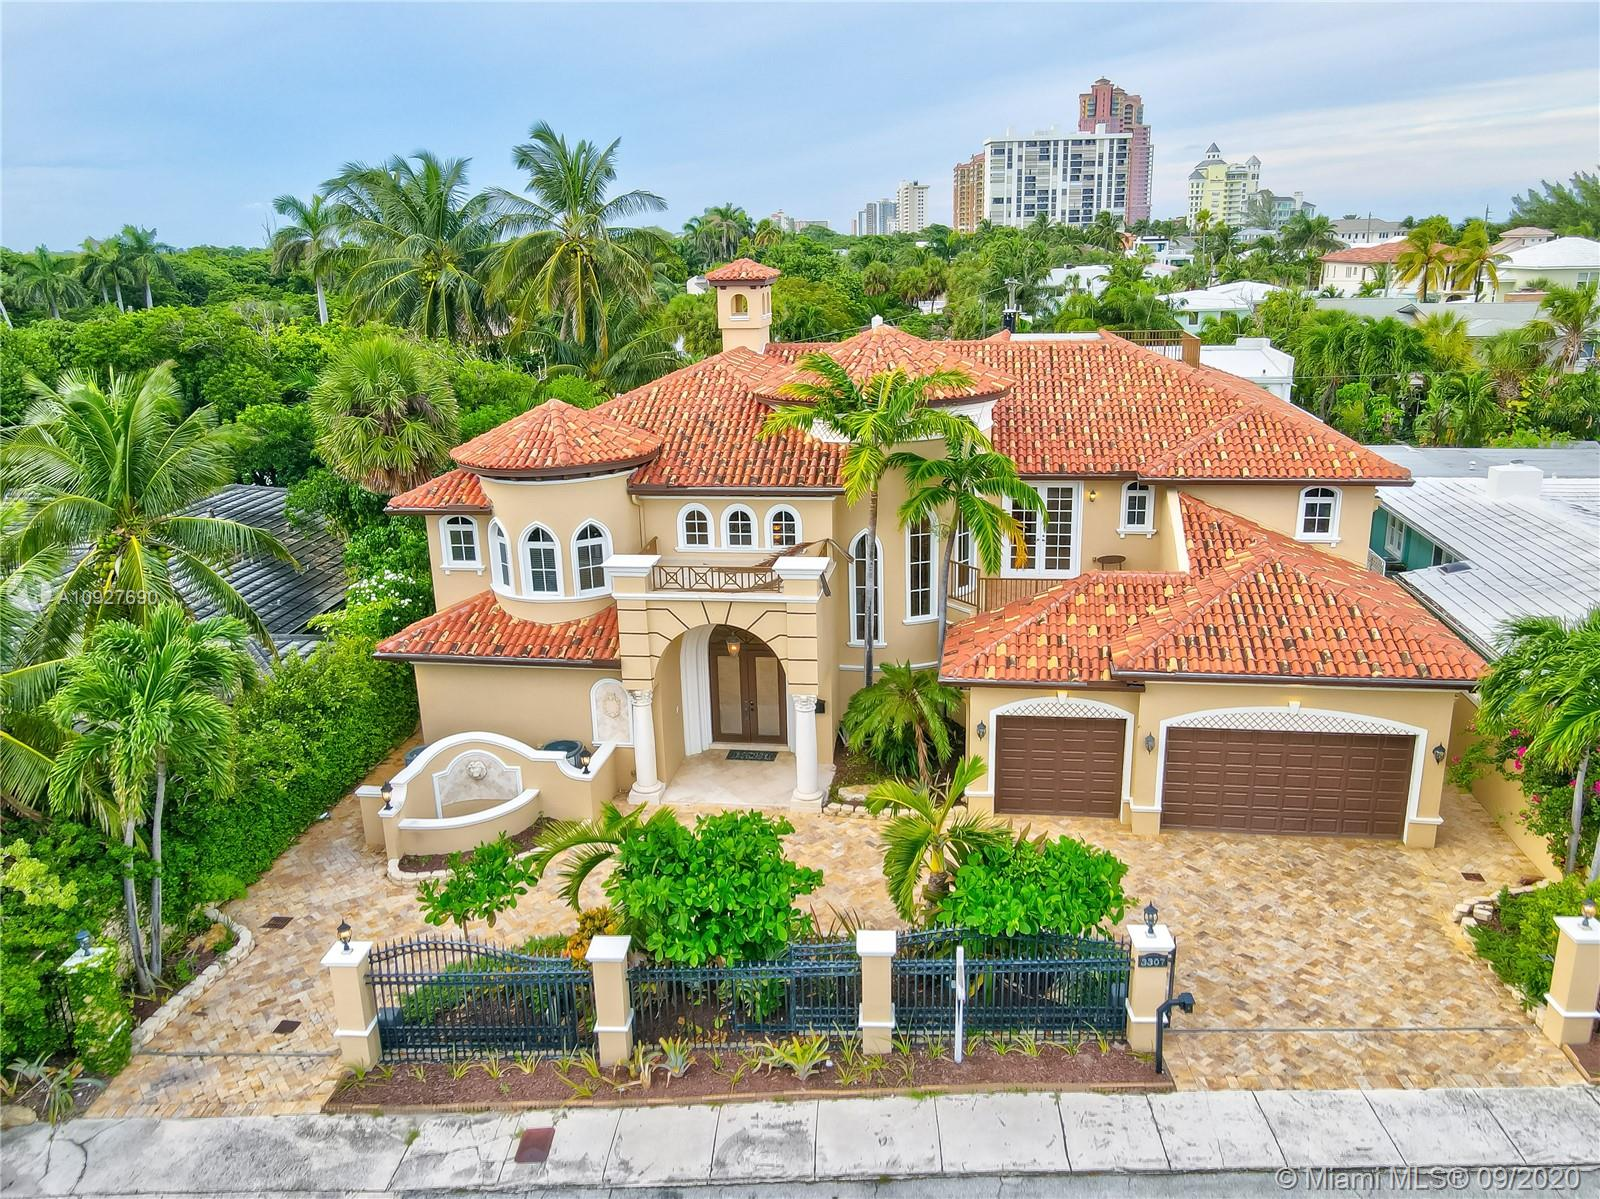 Just steps away from the beach, and completely secured. This one of a kind 6,500 sq ft Mediterranean style home is perfect for big families and entertaining guests. Complete with a 3 car garage, chef's kitchen, and soaring ceilings. The Master Suite includes a separate seating area along with a private balcony and a morning bar with two walk-in closets and another utility closet, while the master bath includes dual sinks with a vanity and separate tub and shower. Watch the waves from your private rooftop terrace or relax poolside, endless possibilities with the ample space and quiet cul-de-sac street making it the perfect opportunity to make this house your home.